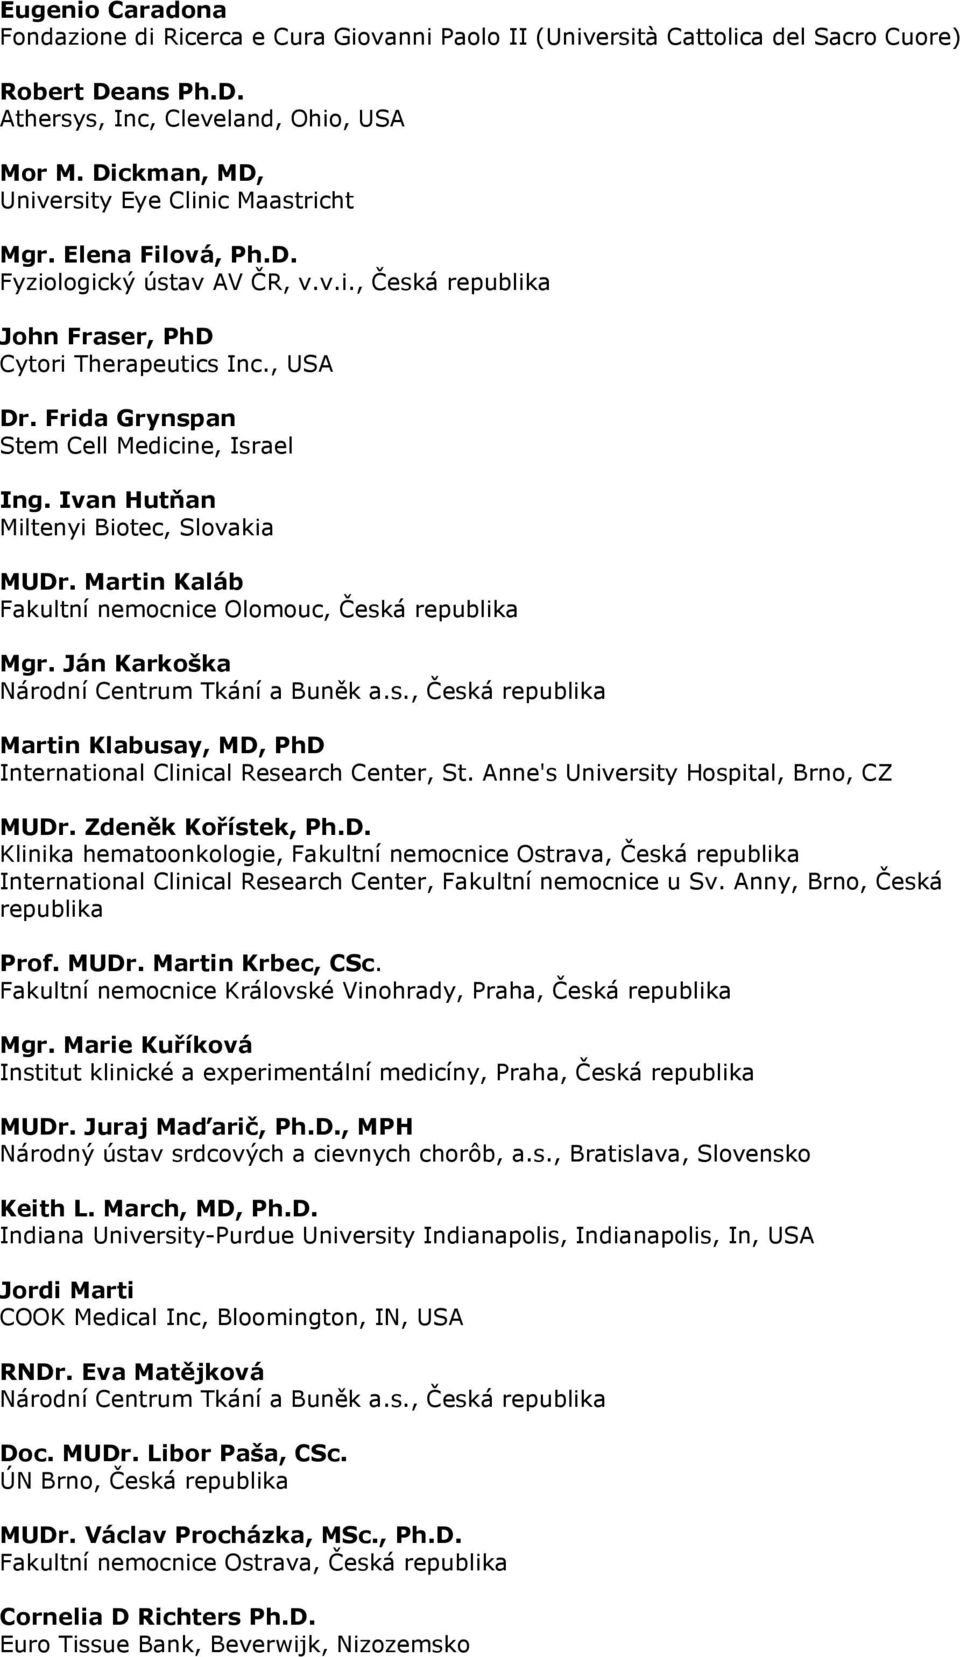 Frida Grynspan Stem Cell Medicine, Israel Ing. Ivan Hutňan Miltenyi Biotec, Slovakia MUDr. Martin Kaláb Fakultní nemocnice Olomouc, Česká republika Mgr. Ján Karkoška Národní Centrum Tkání a Buněk a.s., Česká republika Martin Klabusay, MD, PhD International Clinical Research Center, St.